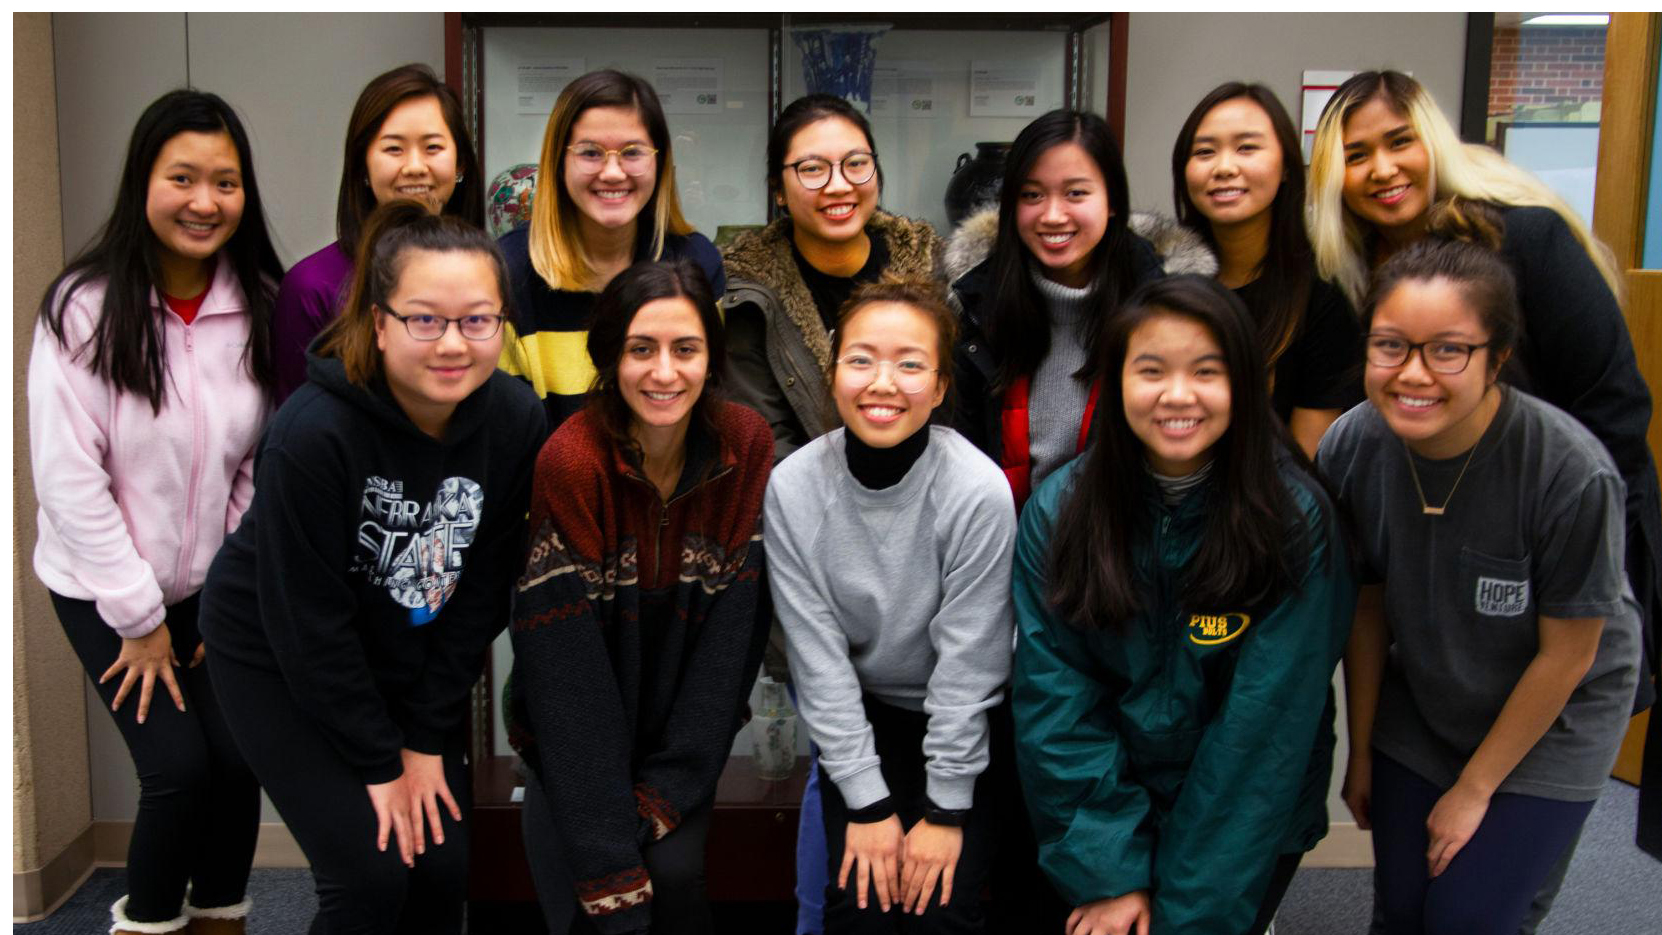 The members of new international sorority NOVA line up to take a photo post meeting at Love Library at the University of Nebraska Lincoln on Monday, Nov. 19, 2018, in Lincoln, Nebraska. | Daily Nebraskan